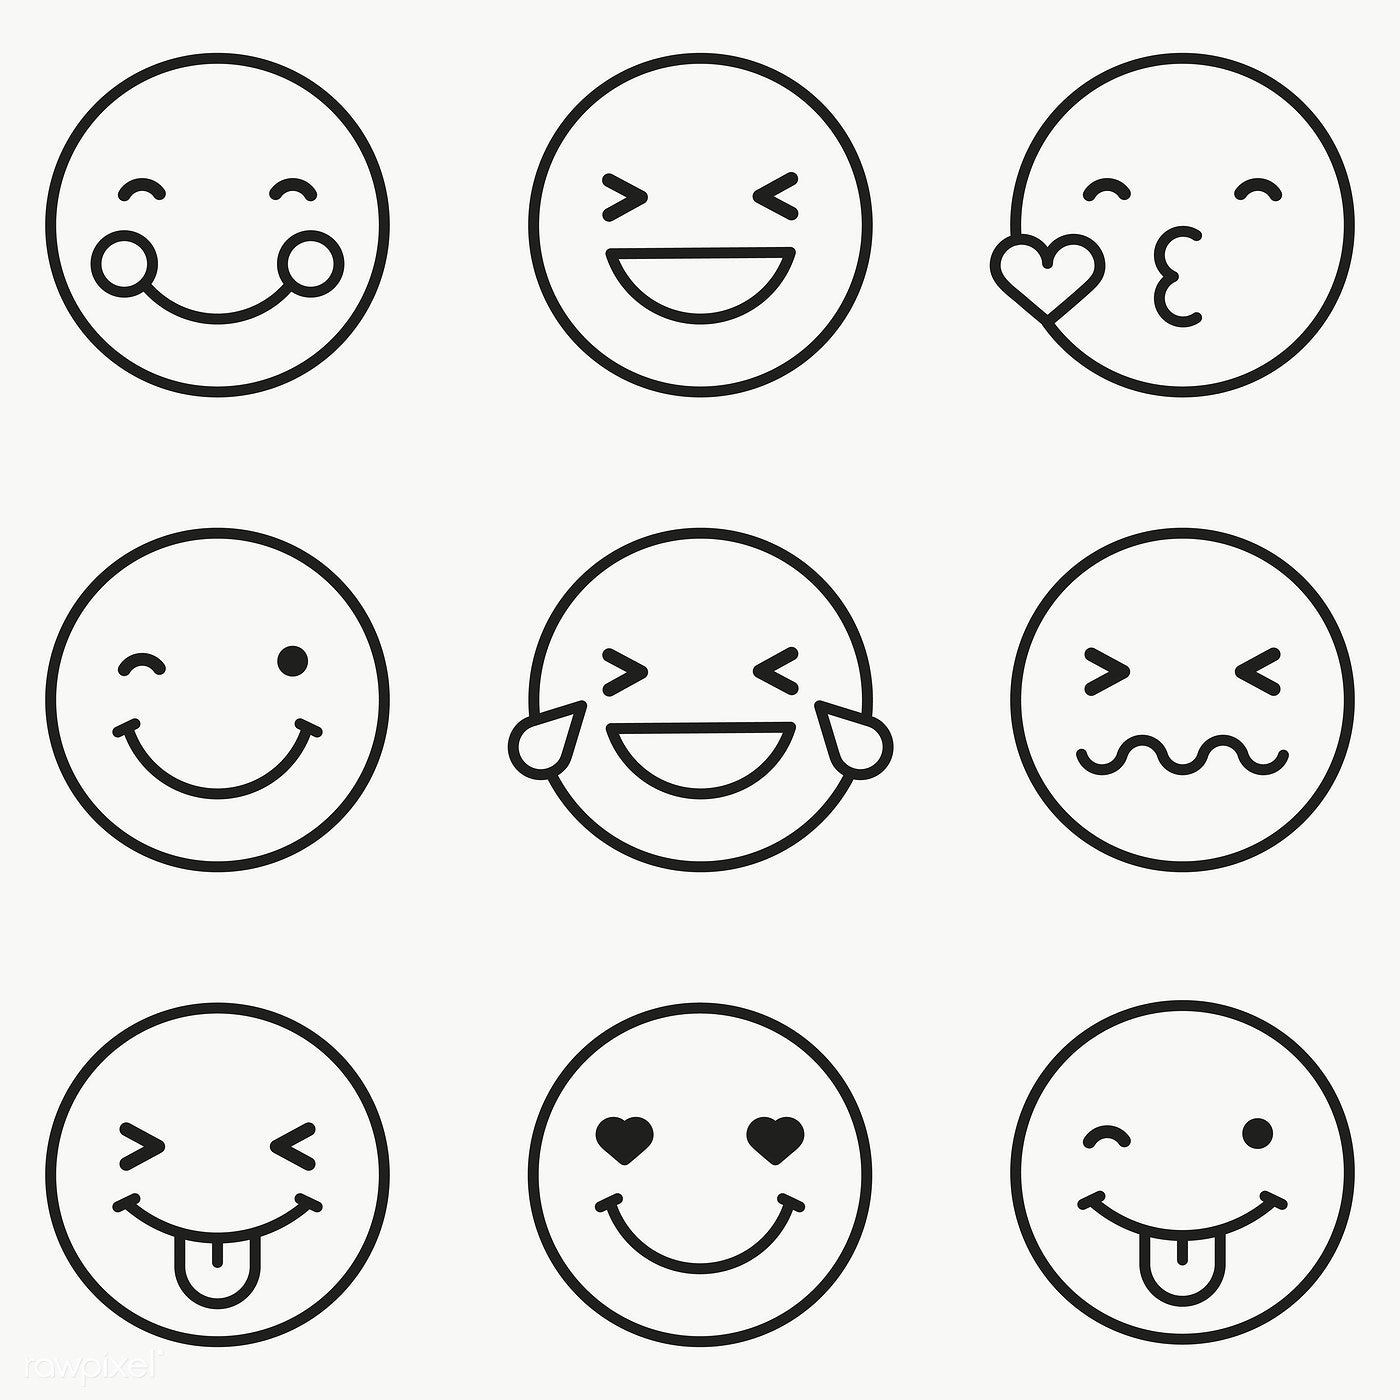 Download premium png of Black outline emoticon set